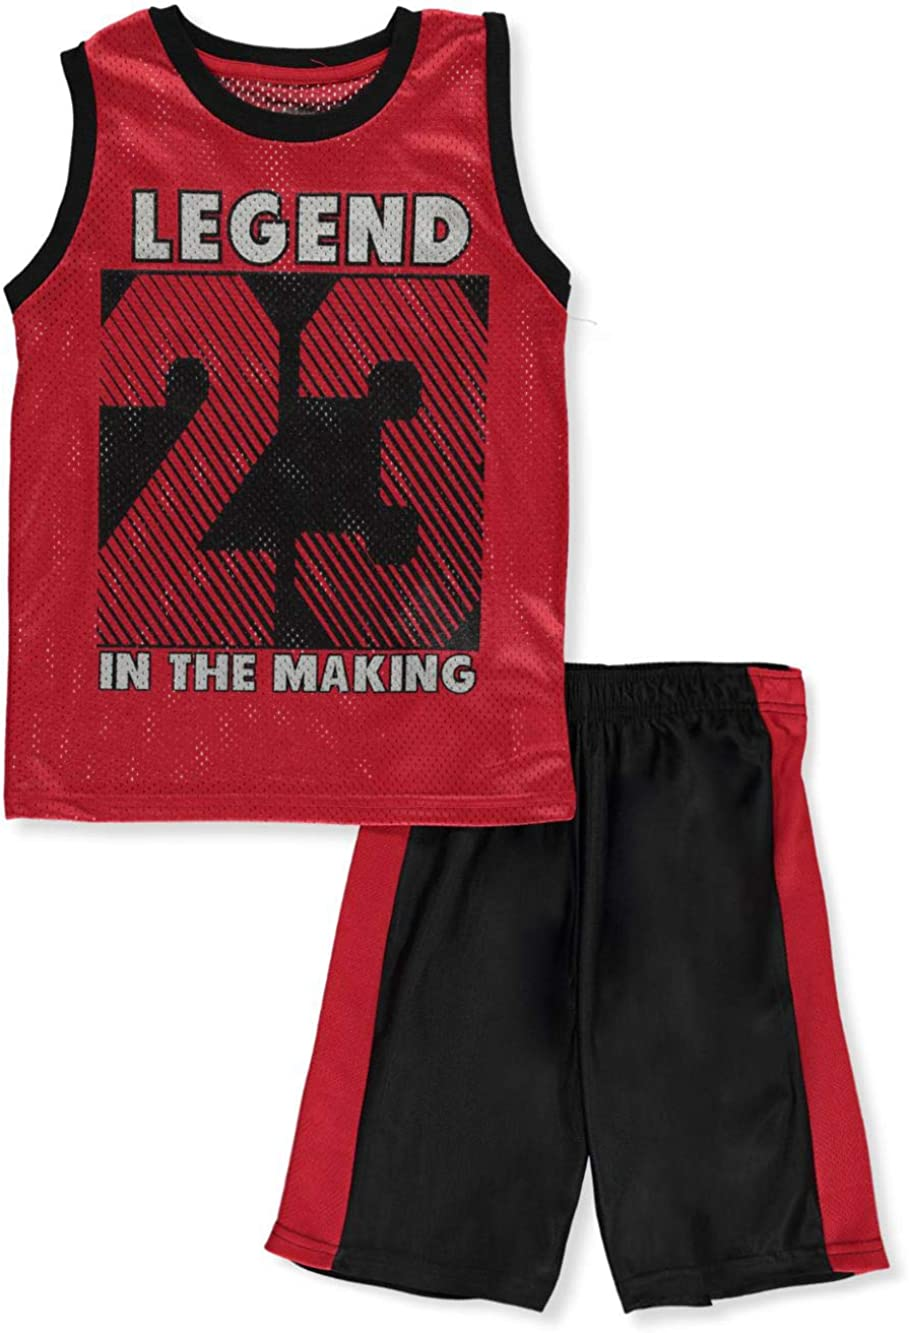 Buzzer Beater Boys Legend in The Making 2-Piece Shorts Set Outfit